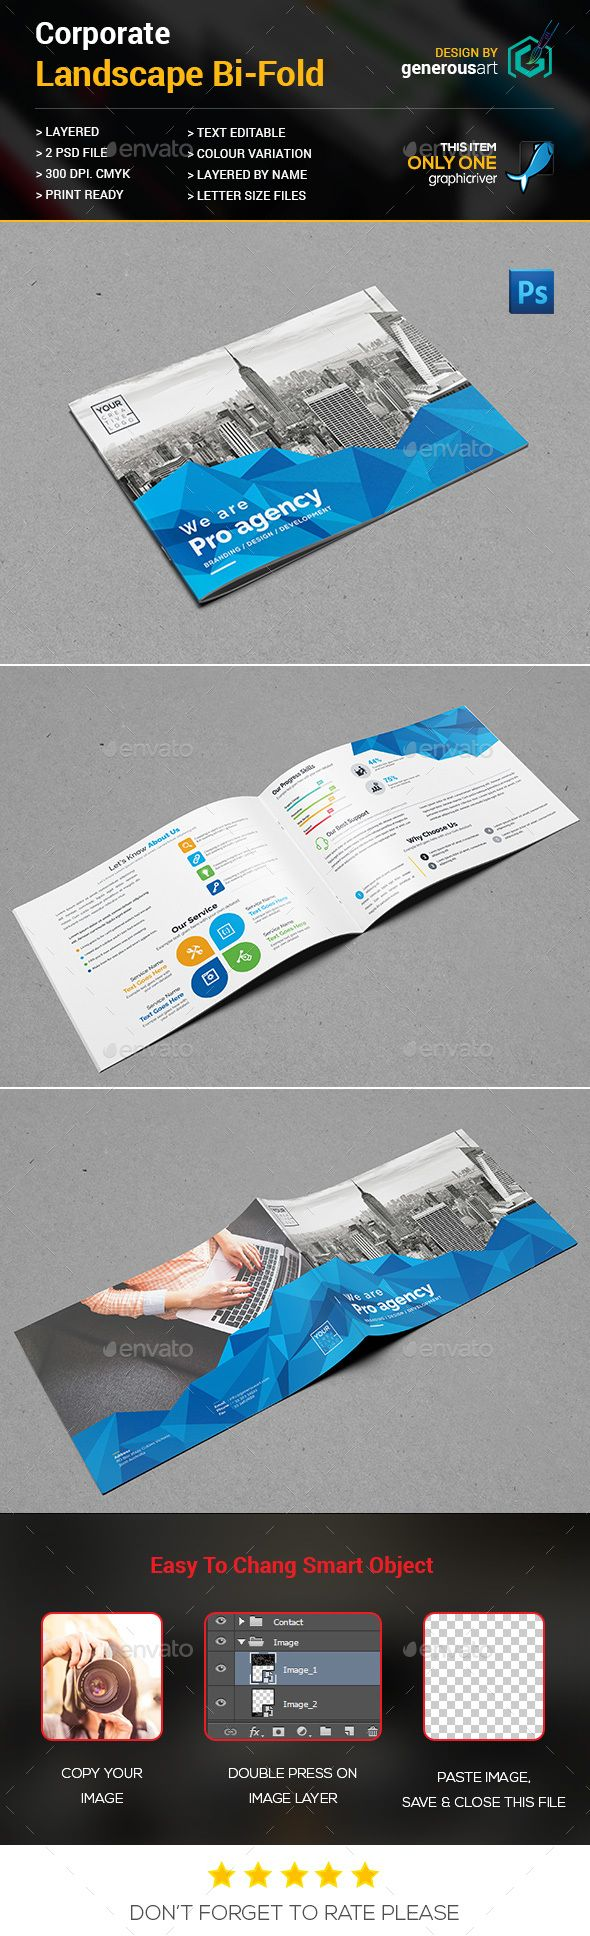 450 best bi fold brochure designs images on pinterest brochures landscape bi fold brochure psd template business card designer download wajeb